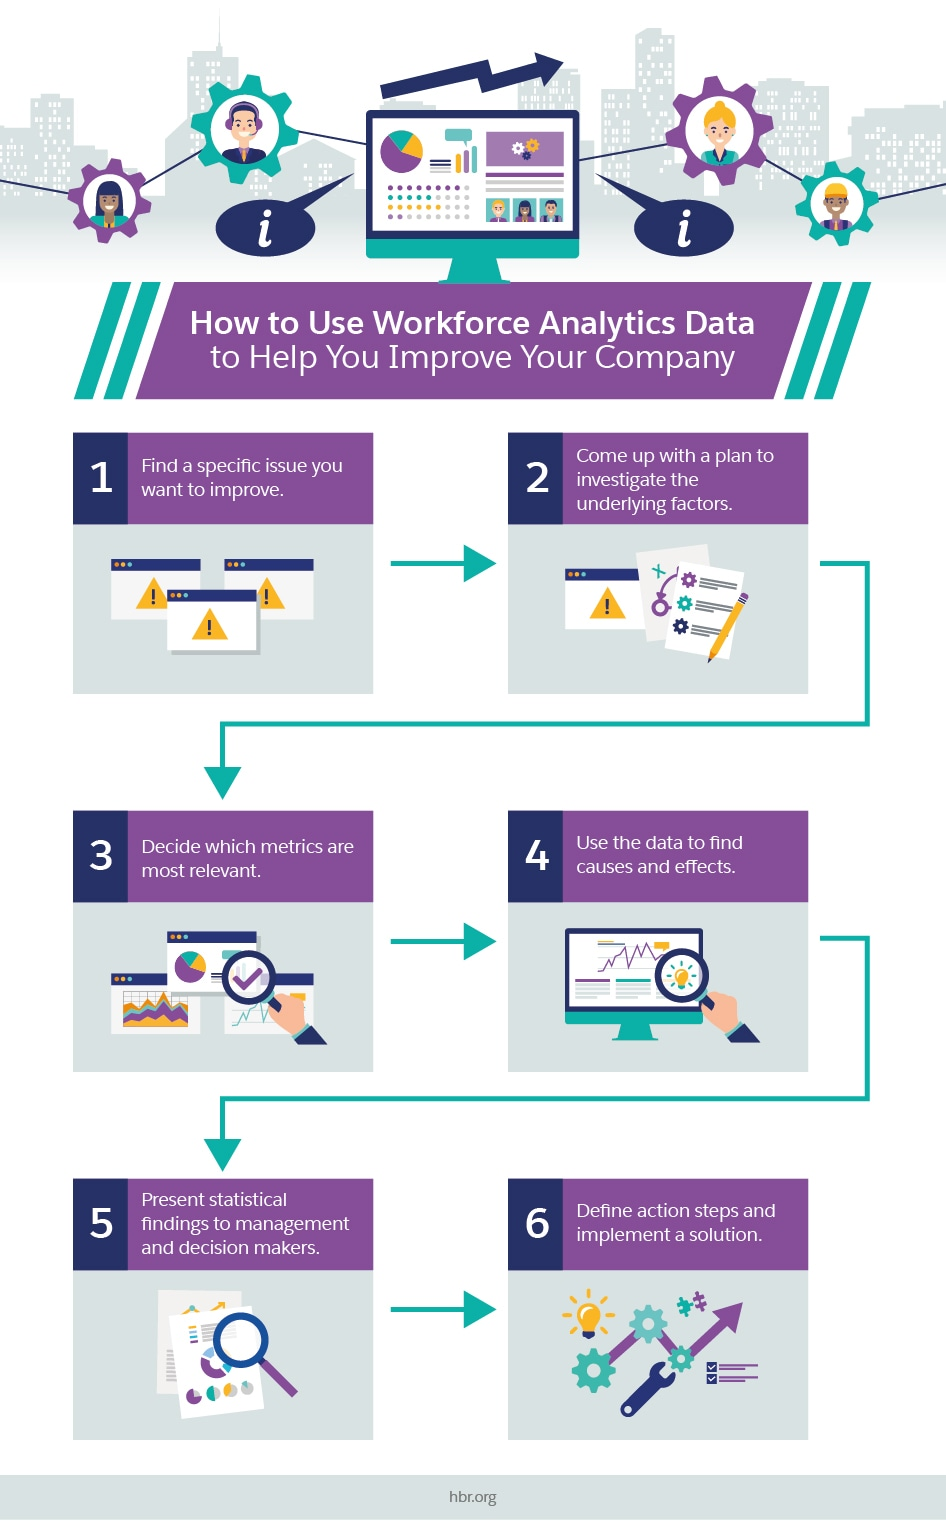 How to Use Workforce Analytics Data to Help You Improve Your Company